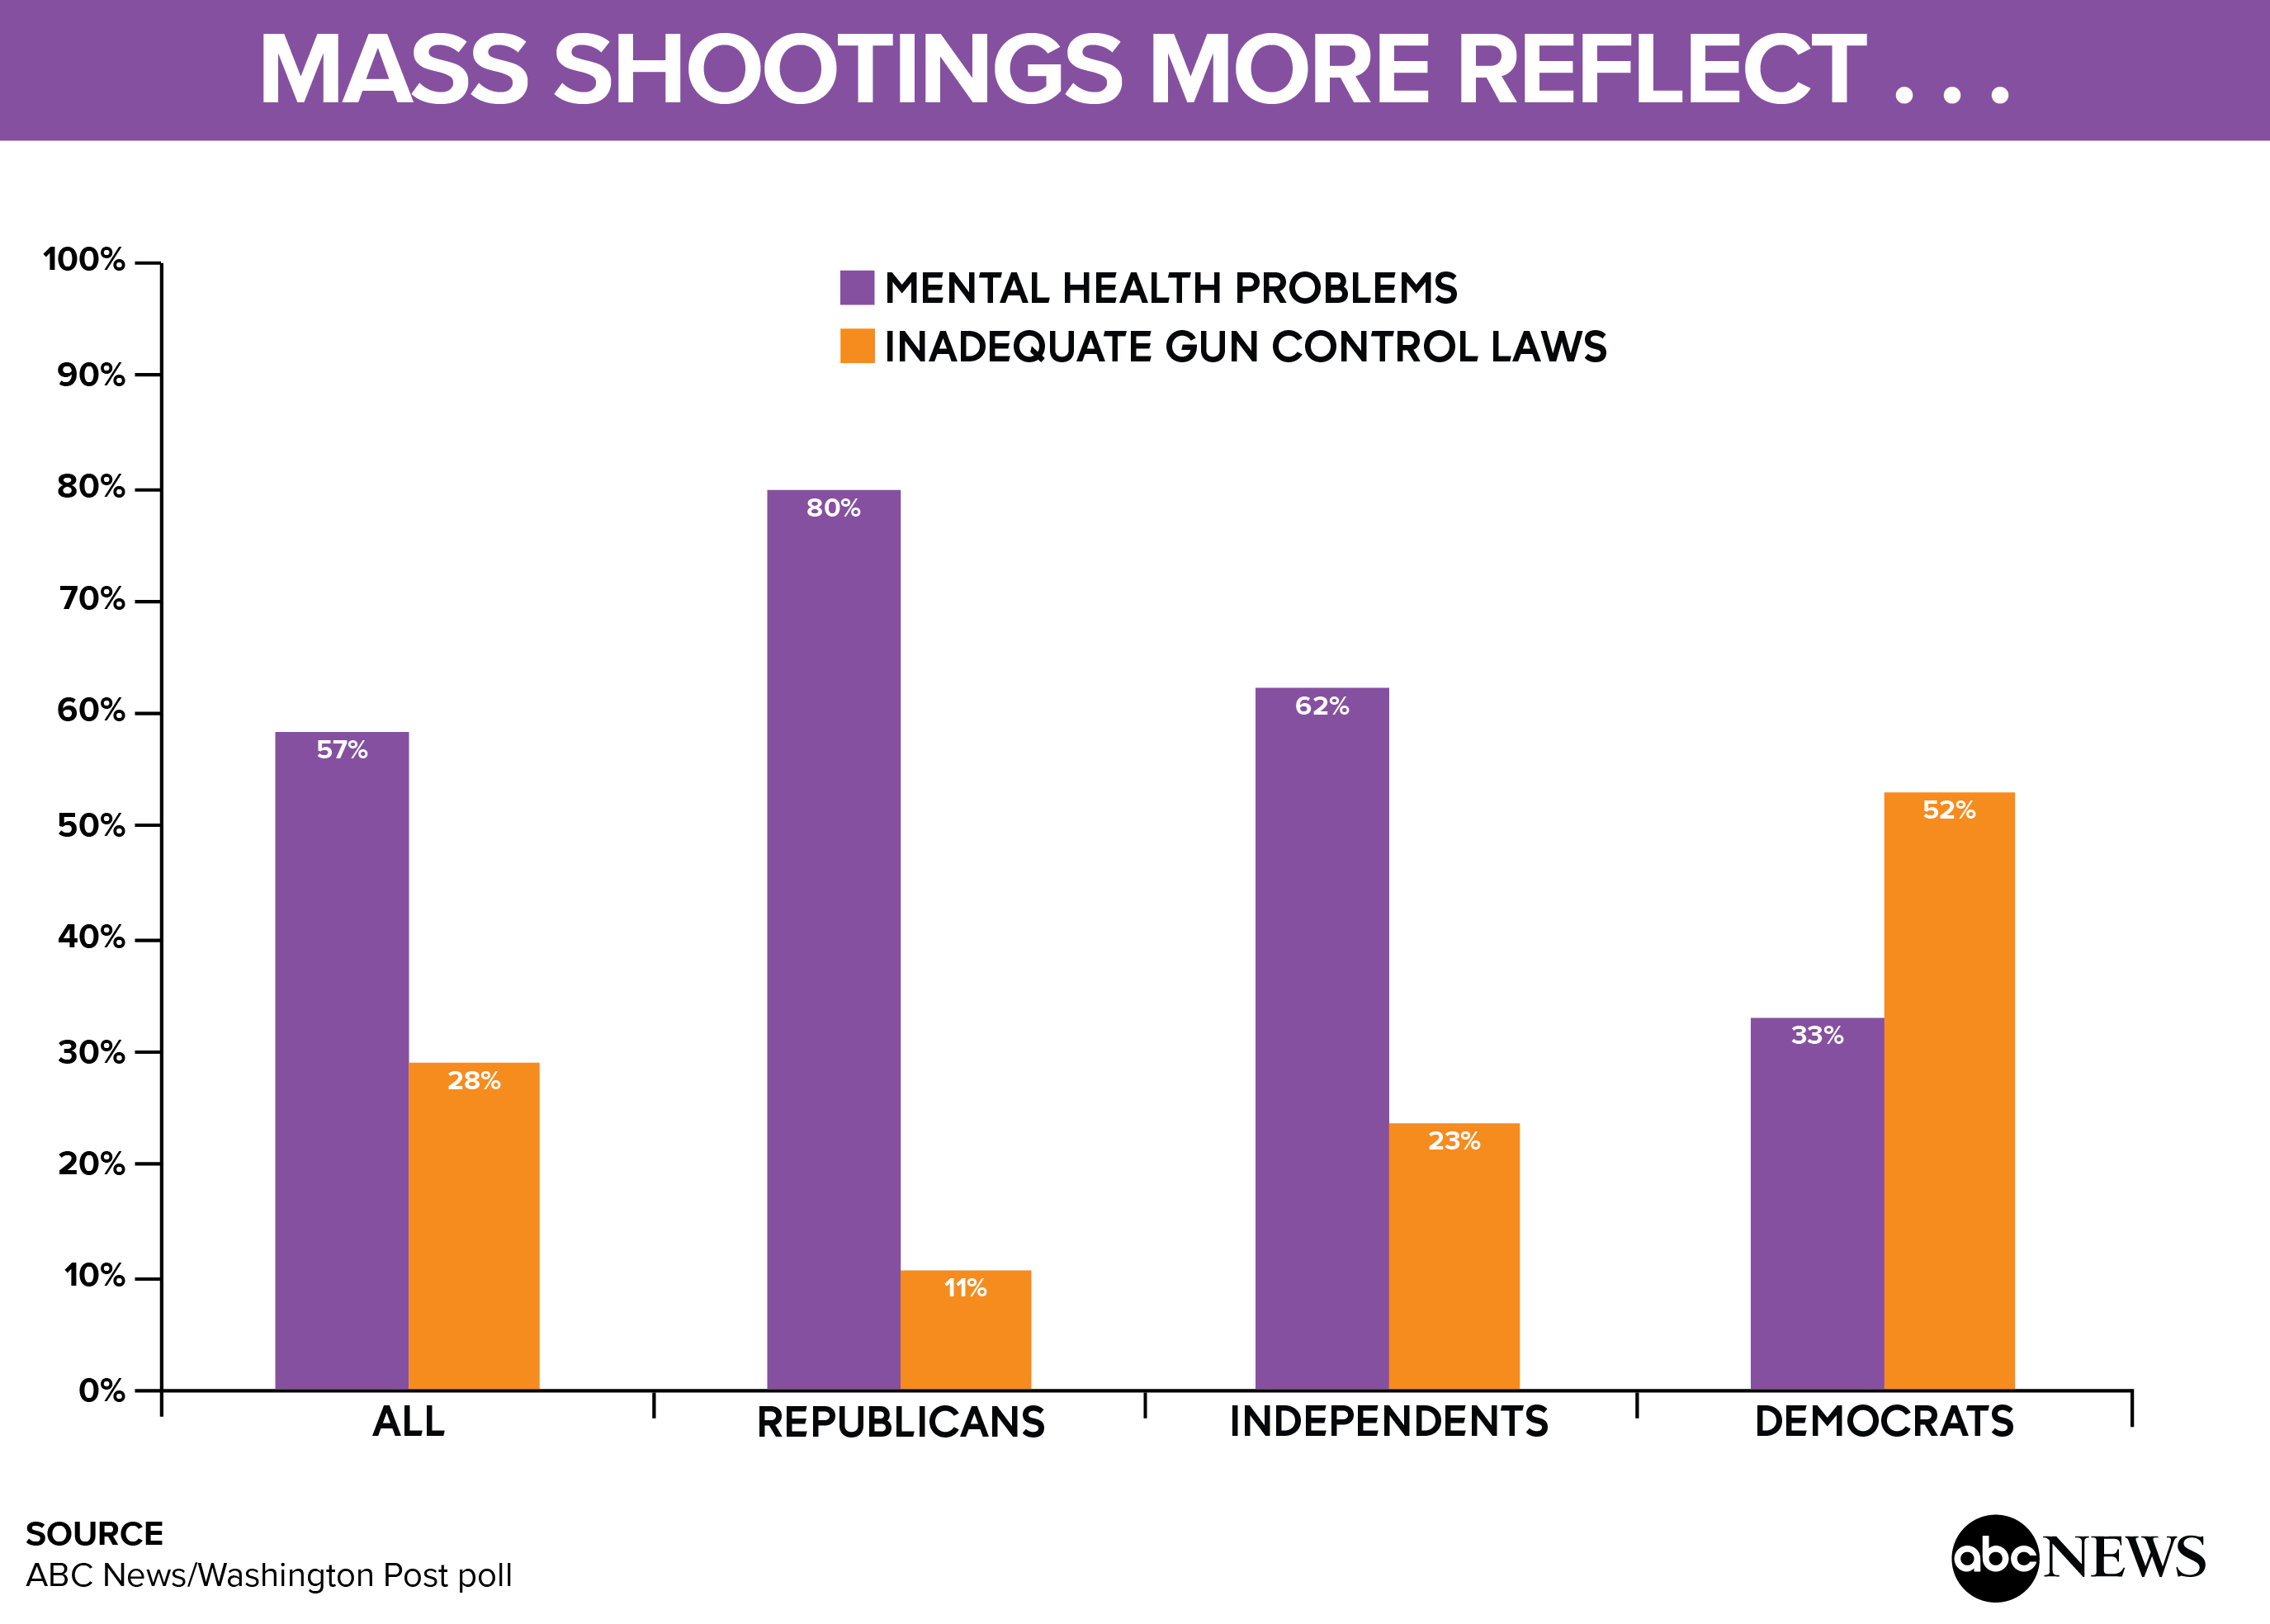 mass%20shooting%20more%20reflect 01 Most see inaction on mass shootings; mental health screening is a priority (POLL)